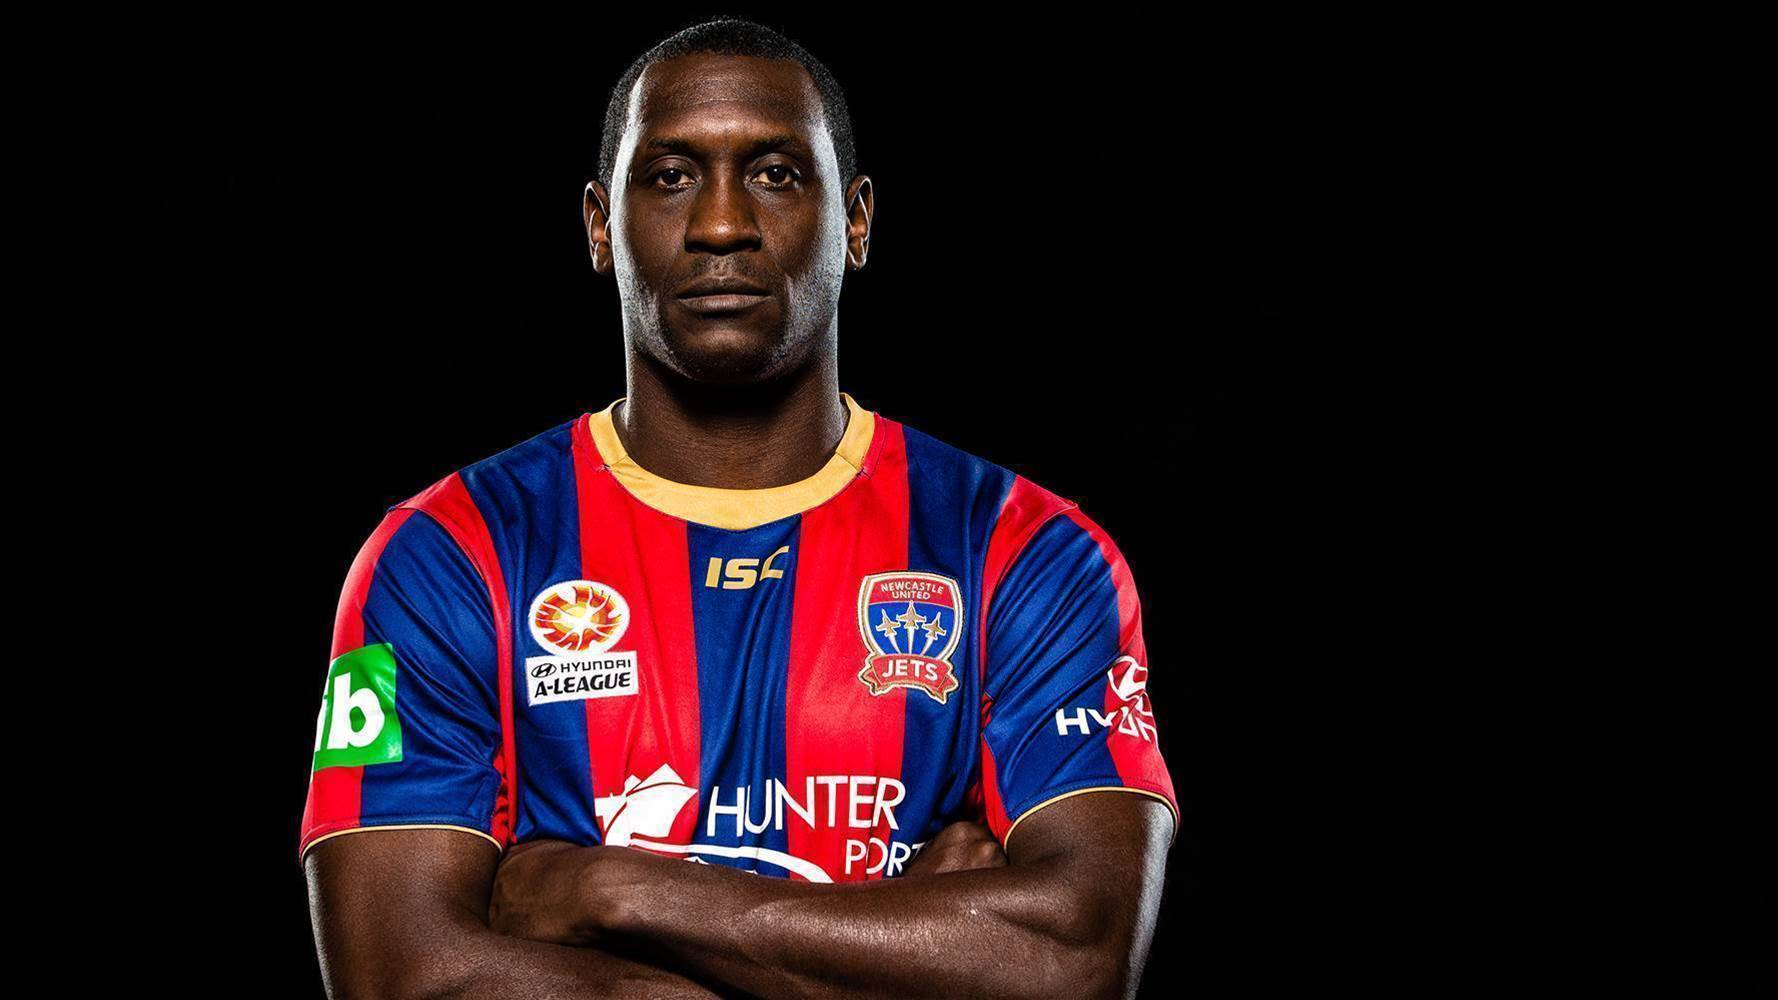 Heskey encourages players: Come to the A-League